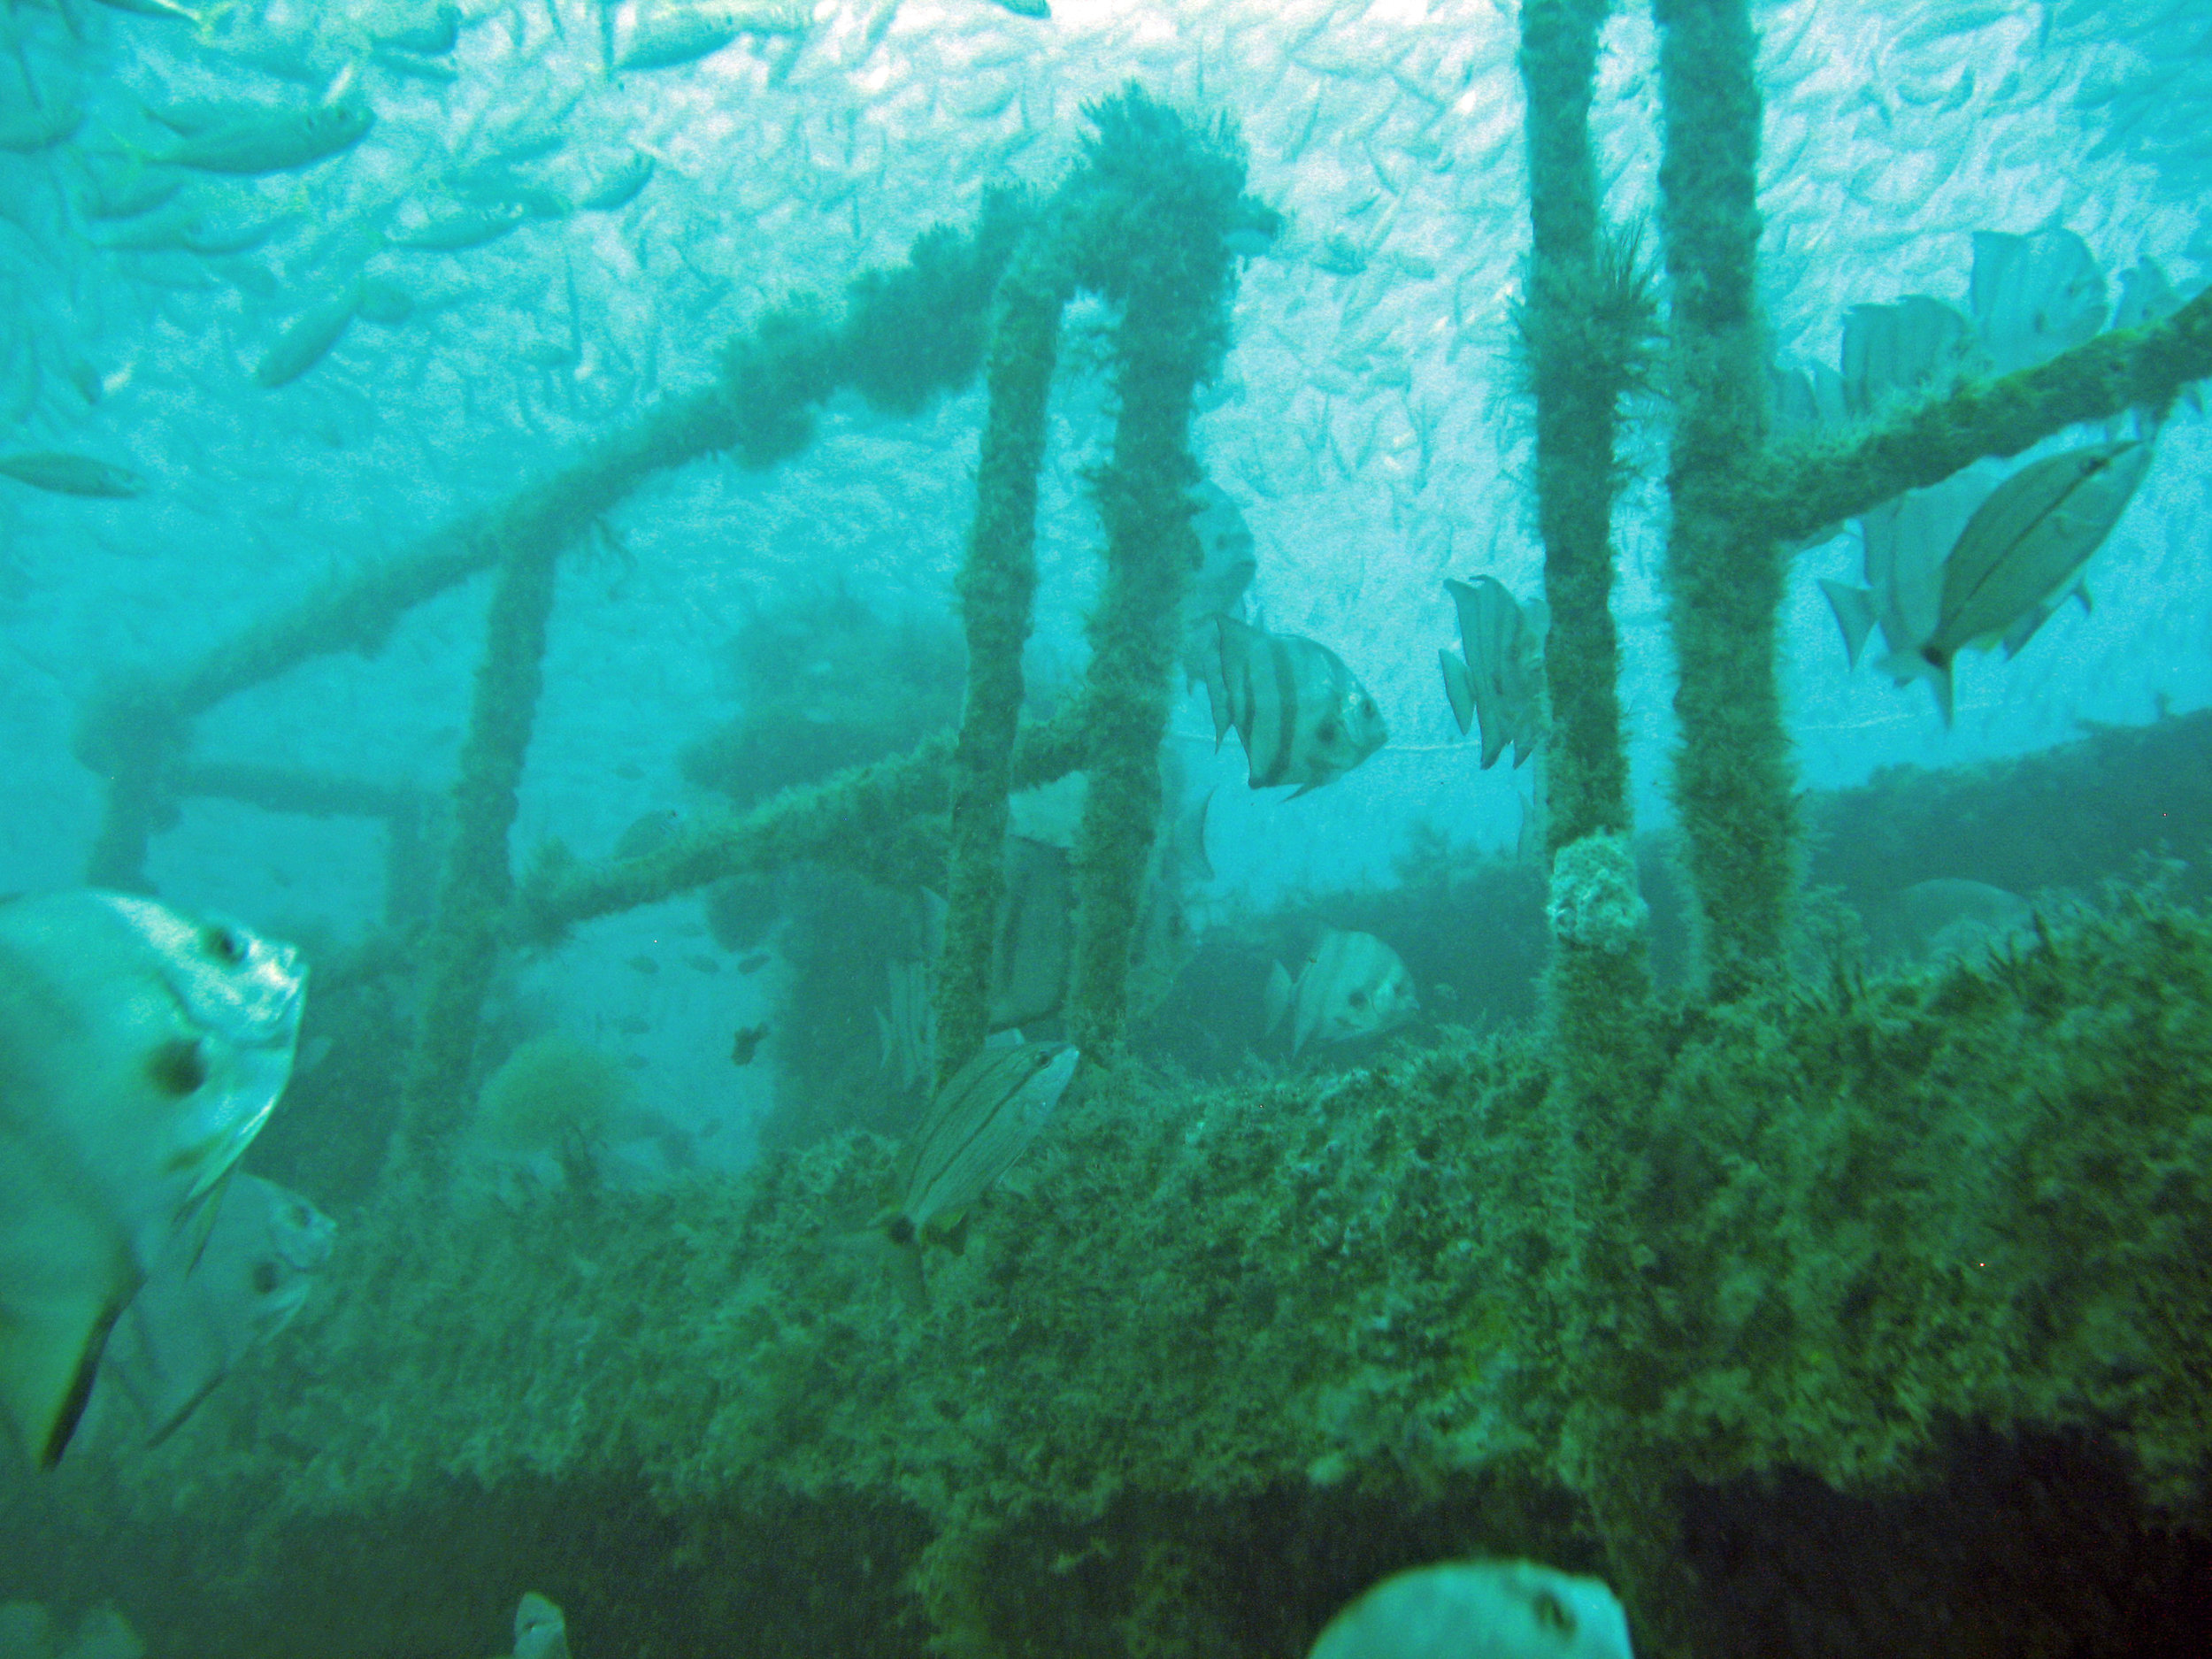 Artificial reefs don't just provide habitat for fish -- the structures are also colonized by marine invertebrates such as corals and sponges. (Photo: Bob Martore/SCDNR)